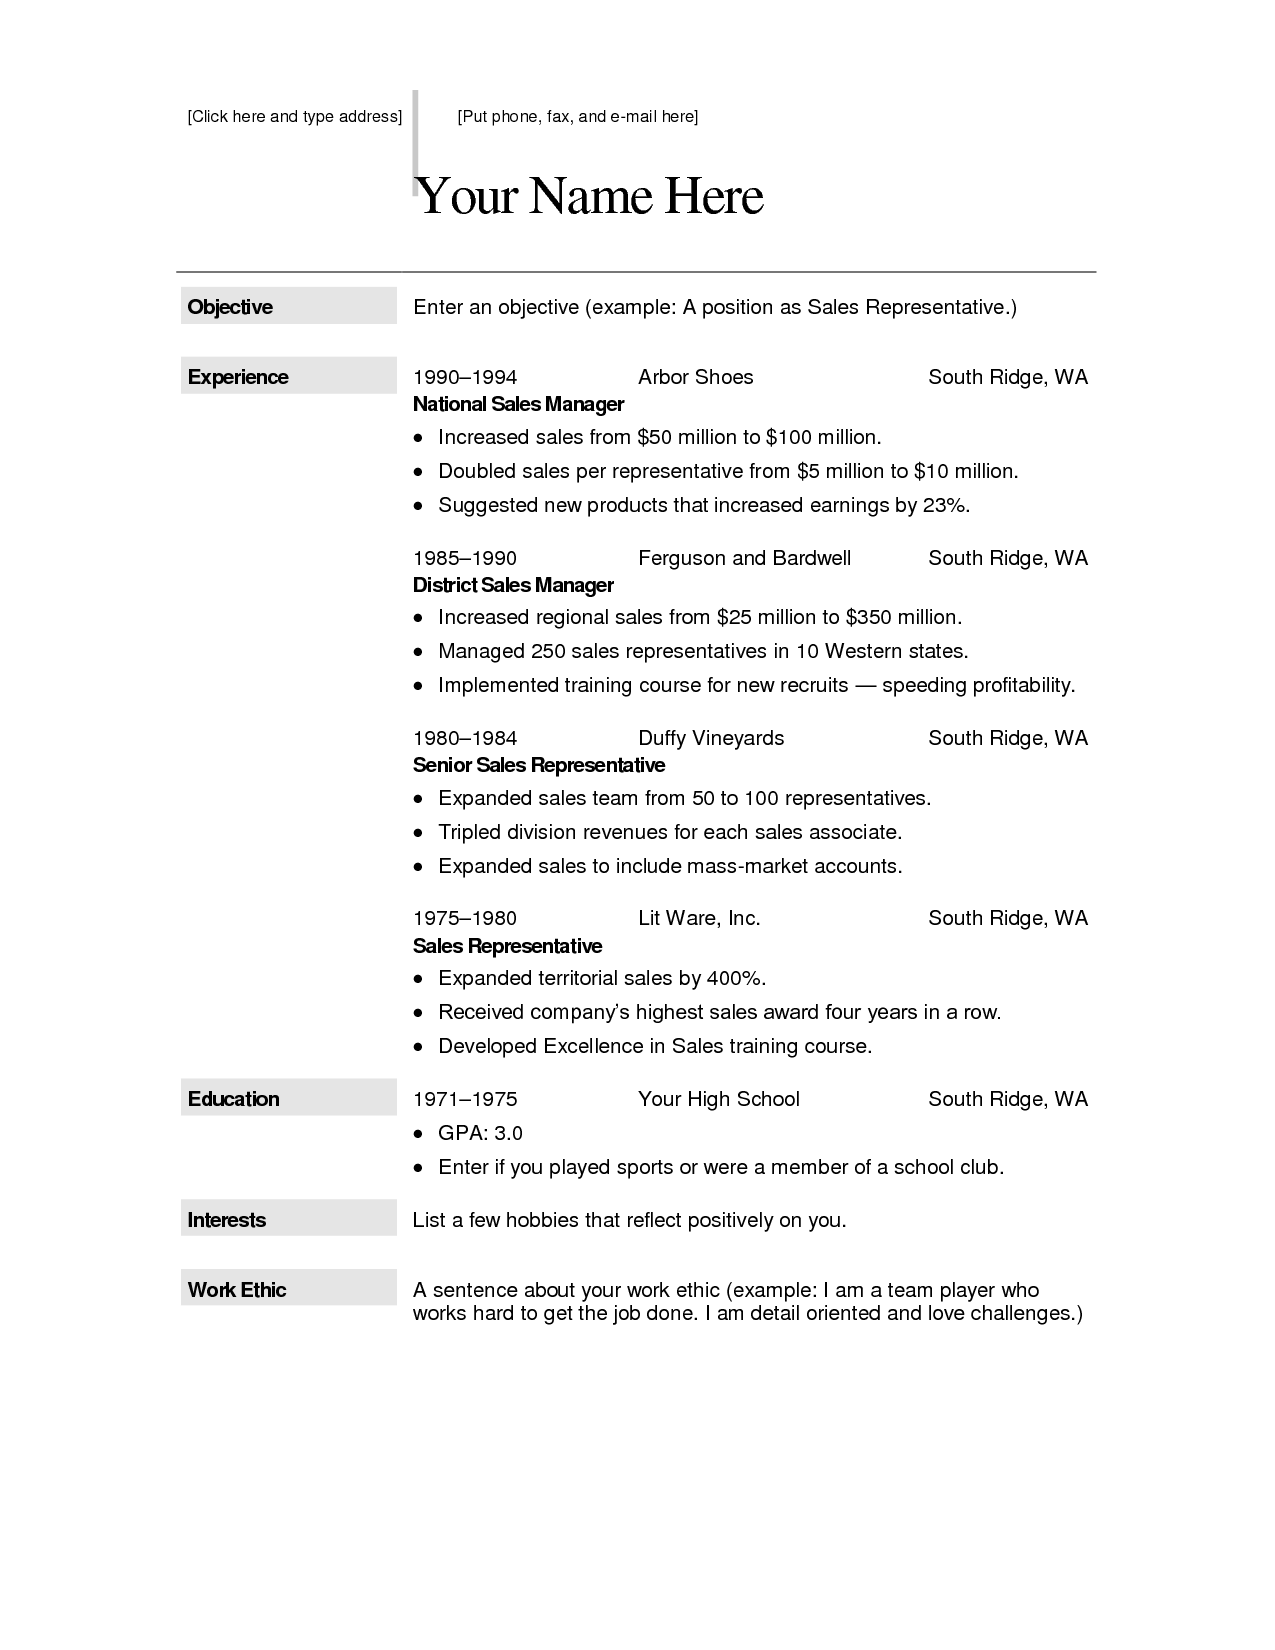 Best Resume Template To Use Free Creative Resume Templates For Macfree Creative Resume